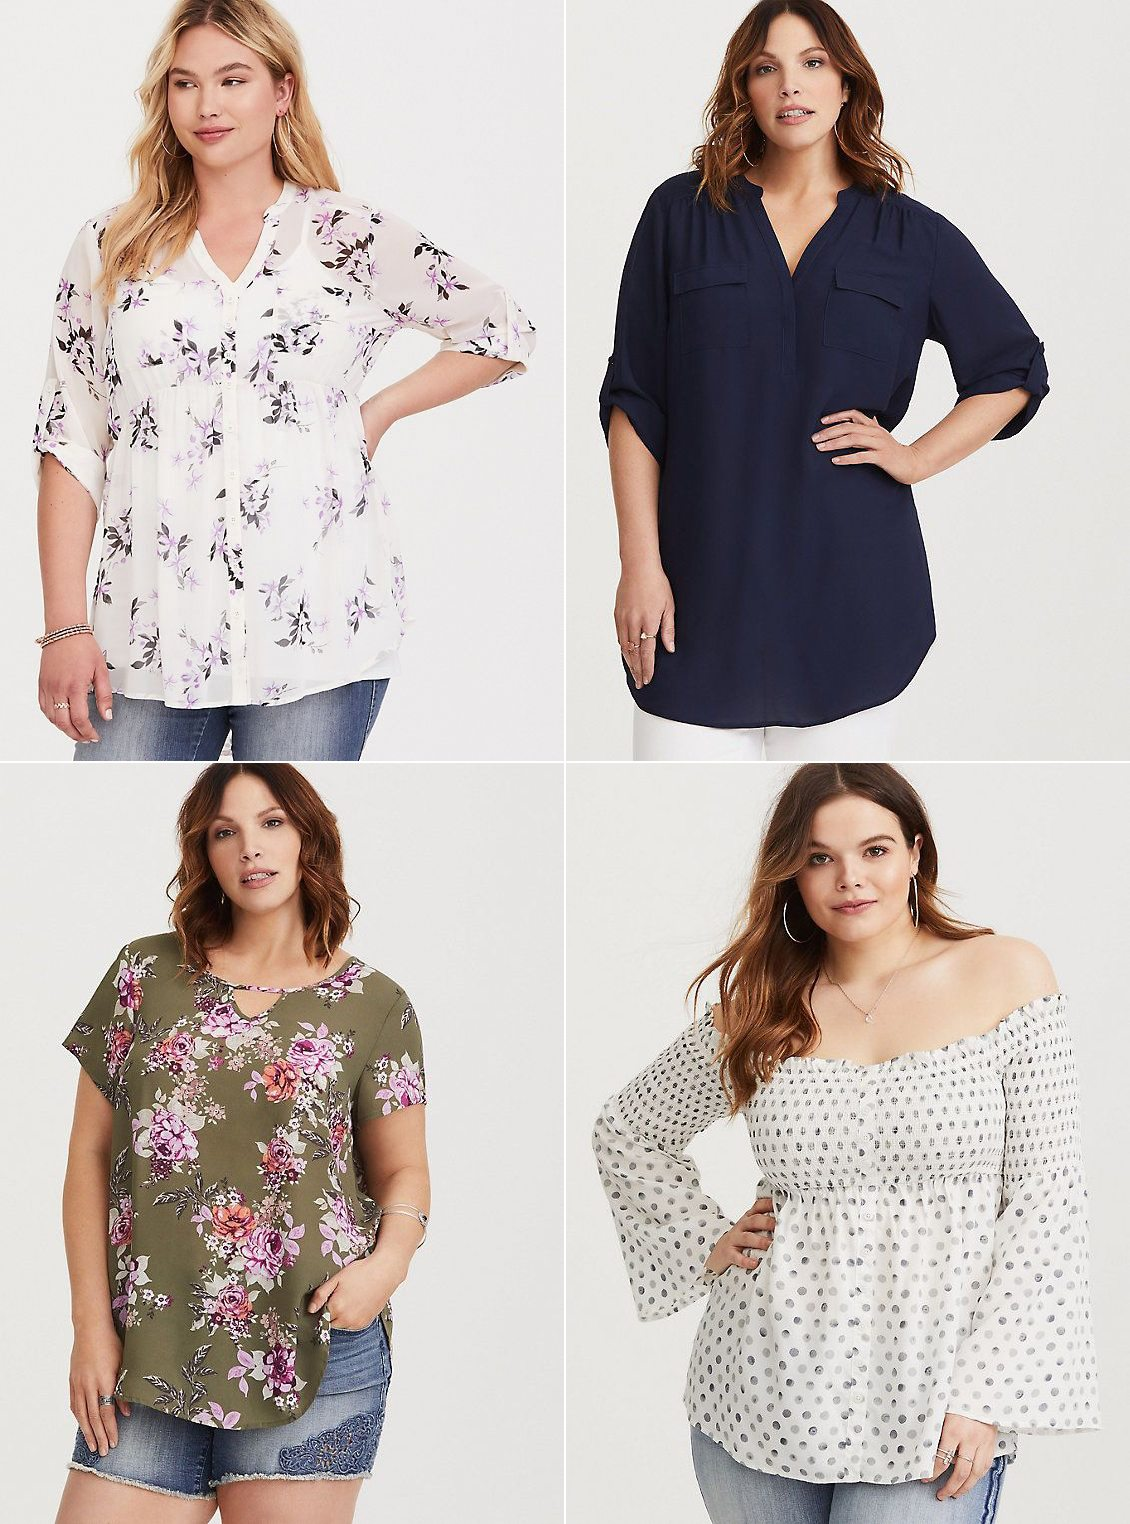 Where to shop for stylish and trendy plus size clothing - click through for all @cydconverse's favorite places to shop! | Torrid Review